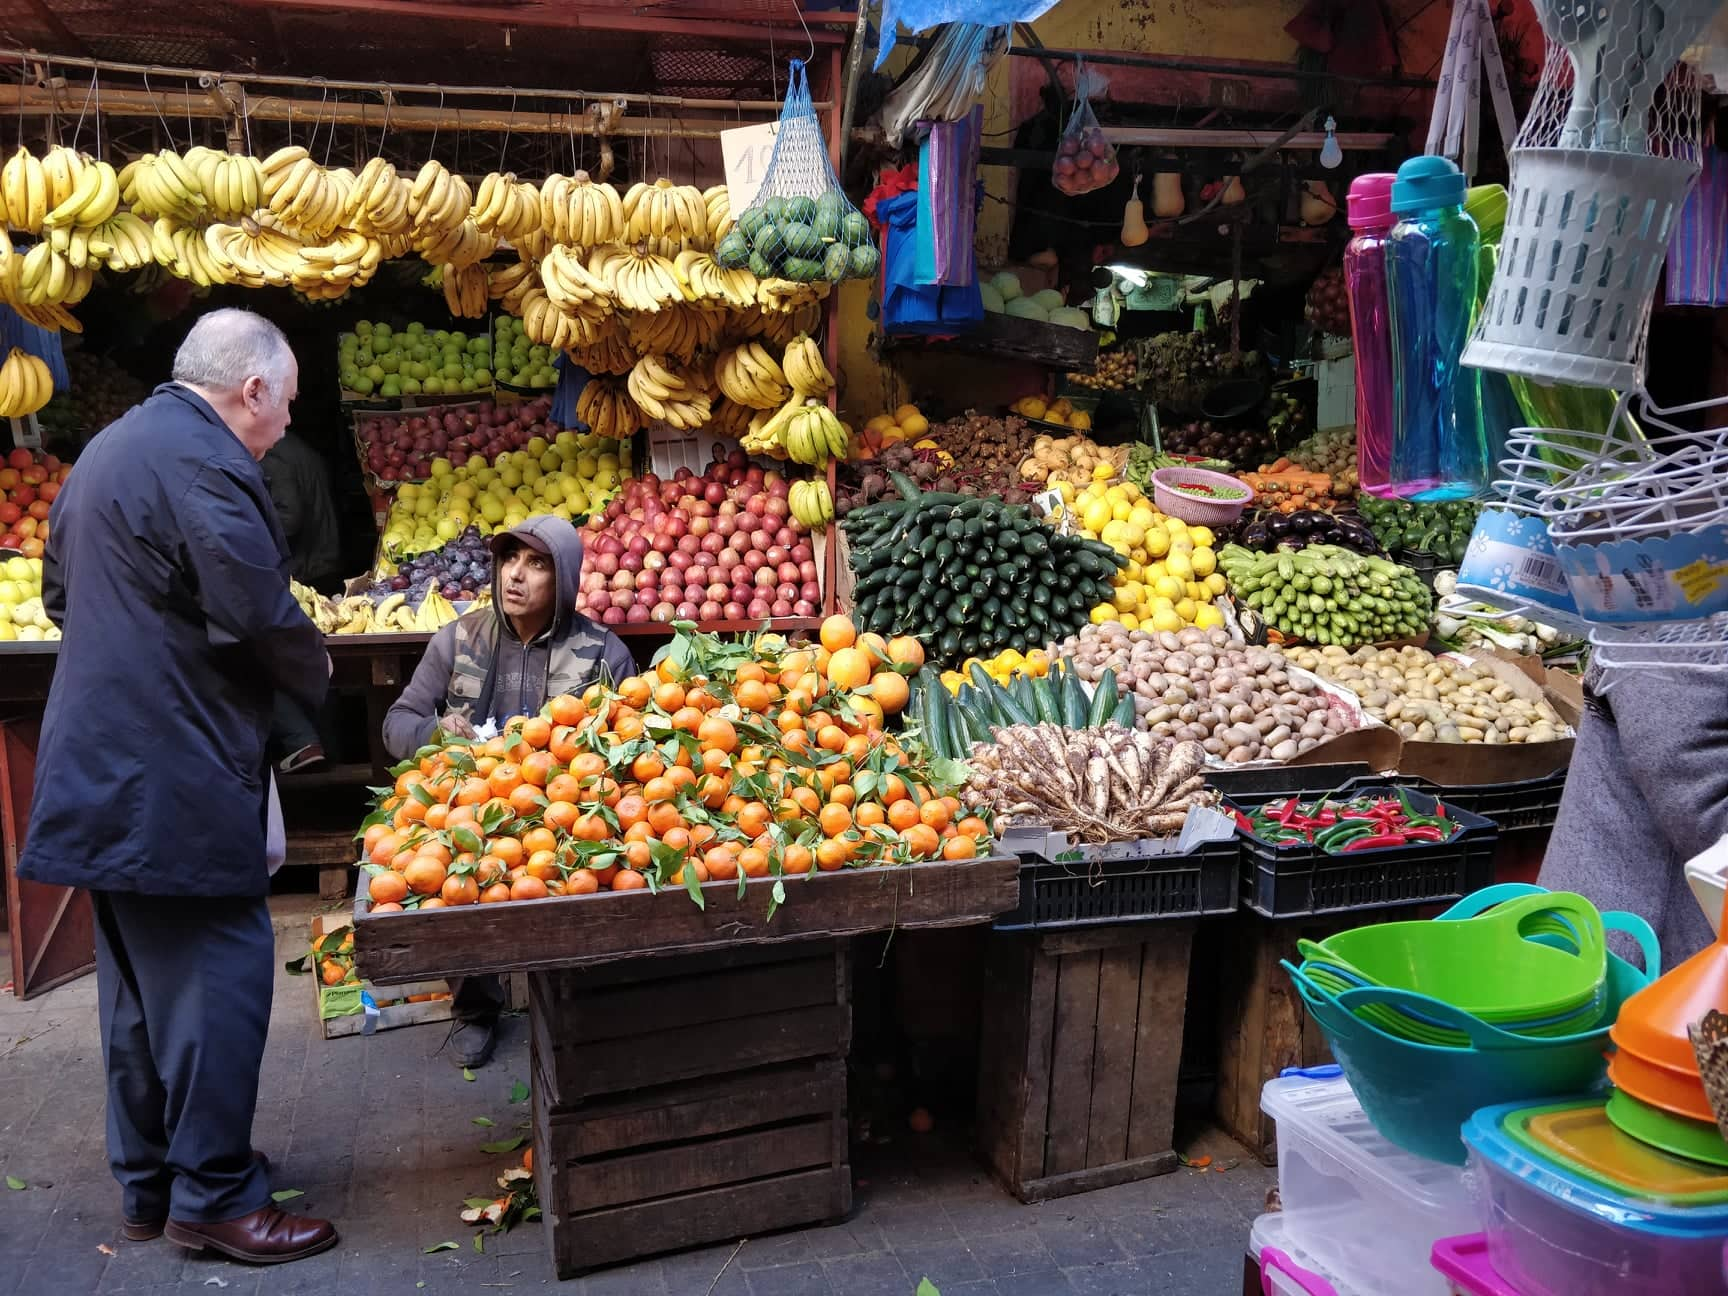 Fruits and veggies for sale in a Moroccan market.